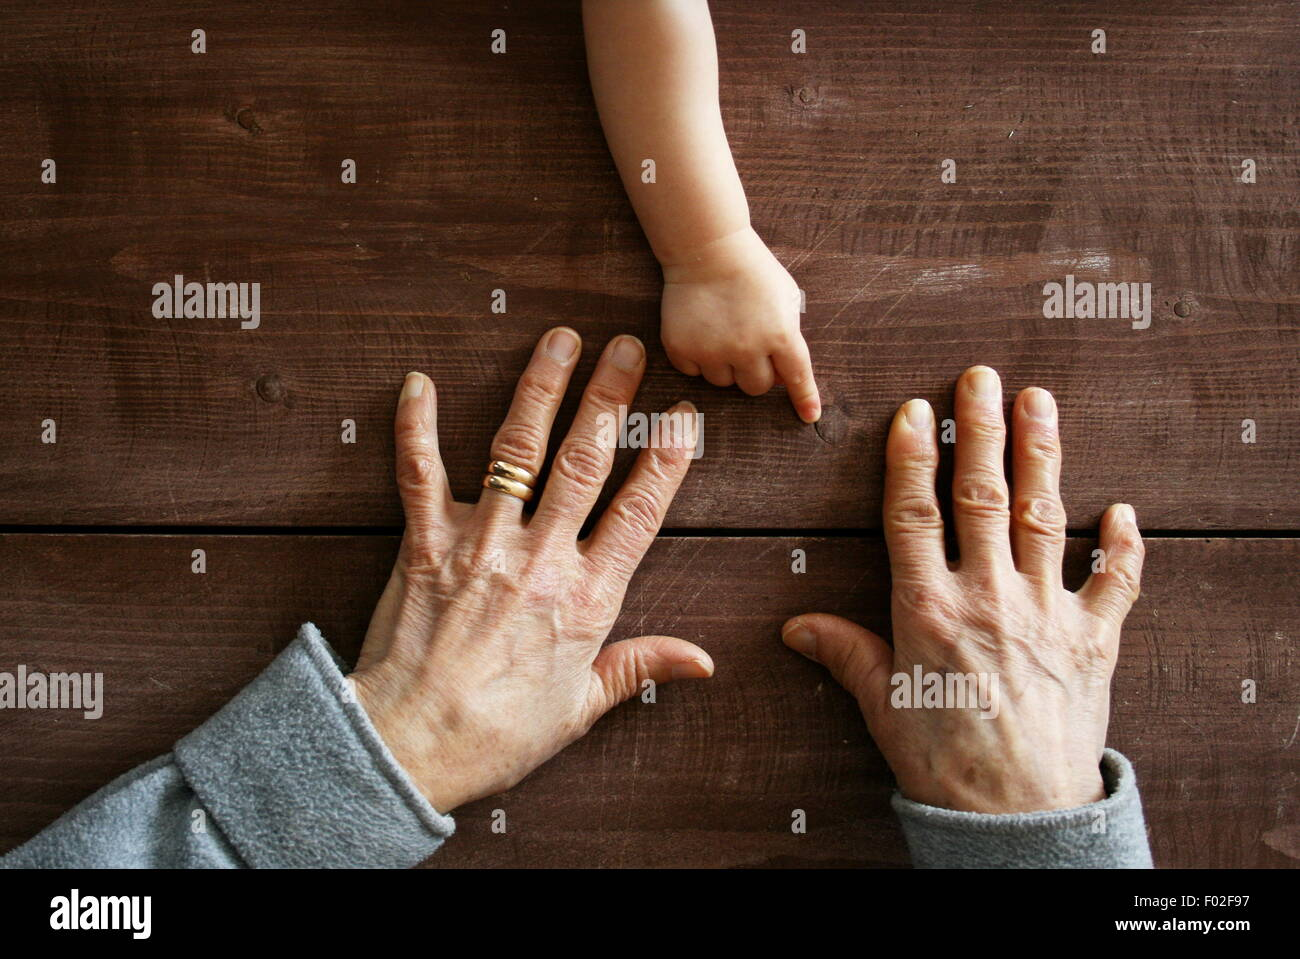 Baby boy's hand pointing at grandmother's hands - Stock Image